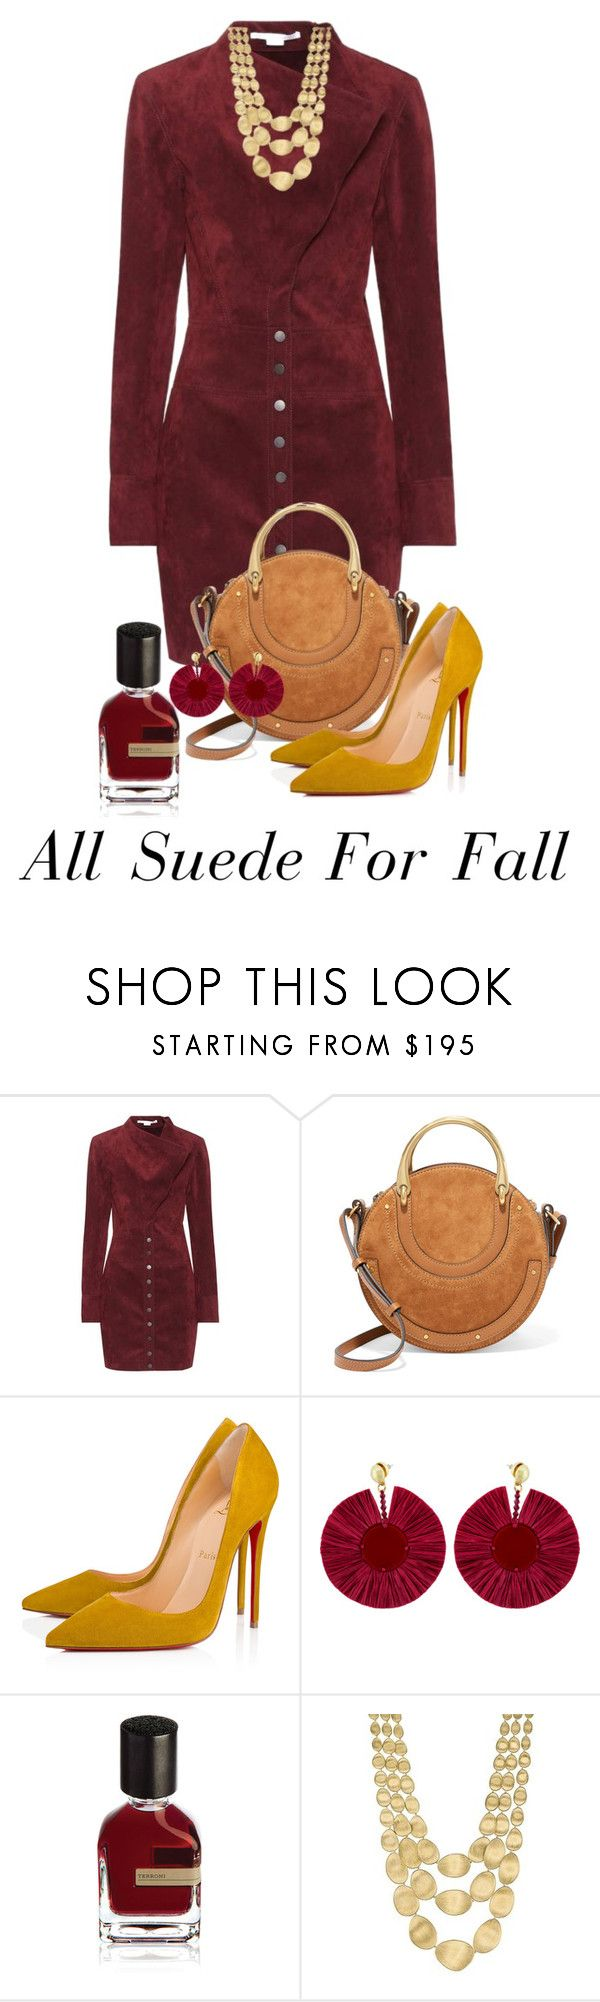 """Be Seduced By Suede"" by shamrockclover ❤ liked on Polyvore featuring STELLA McCARTNEY, Chloé, Christian Louboutin, Oscar de la Renta, Orto Parisi, Marco Bicego and suede"